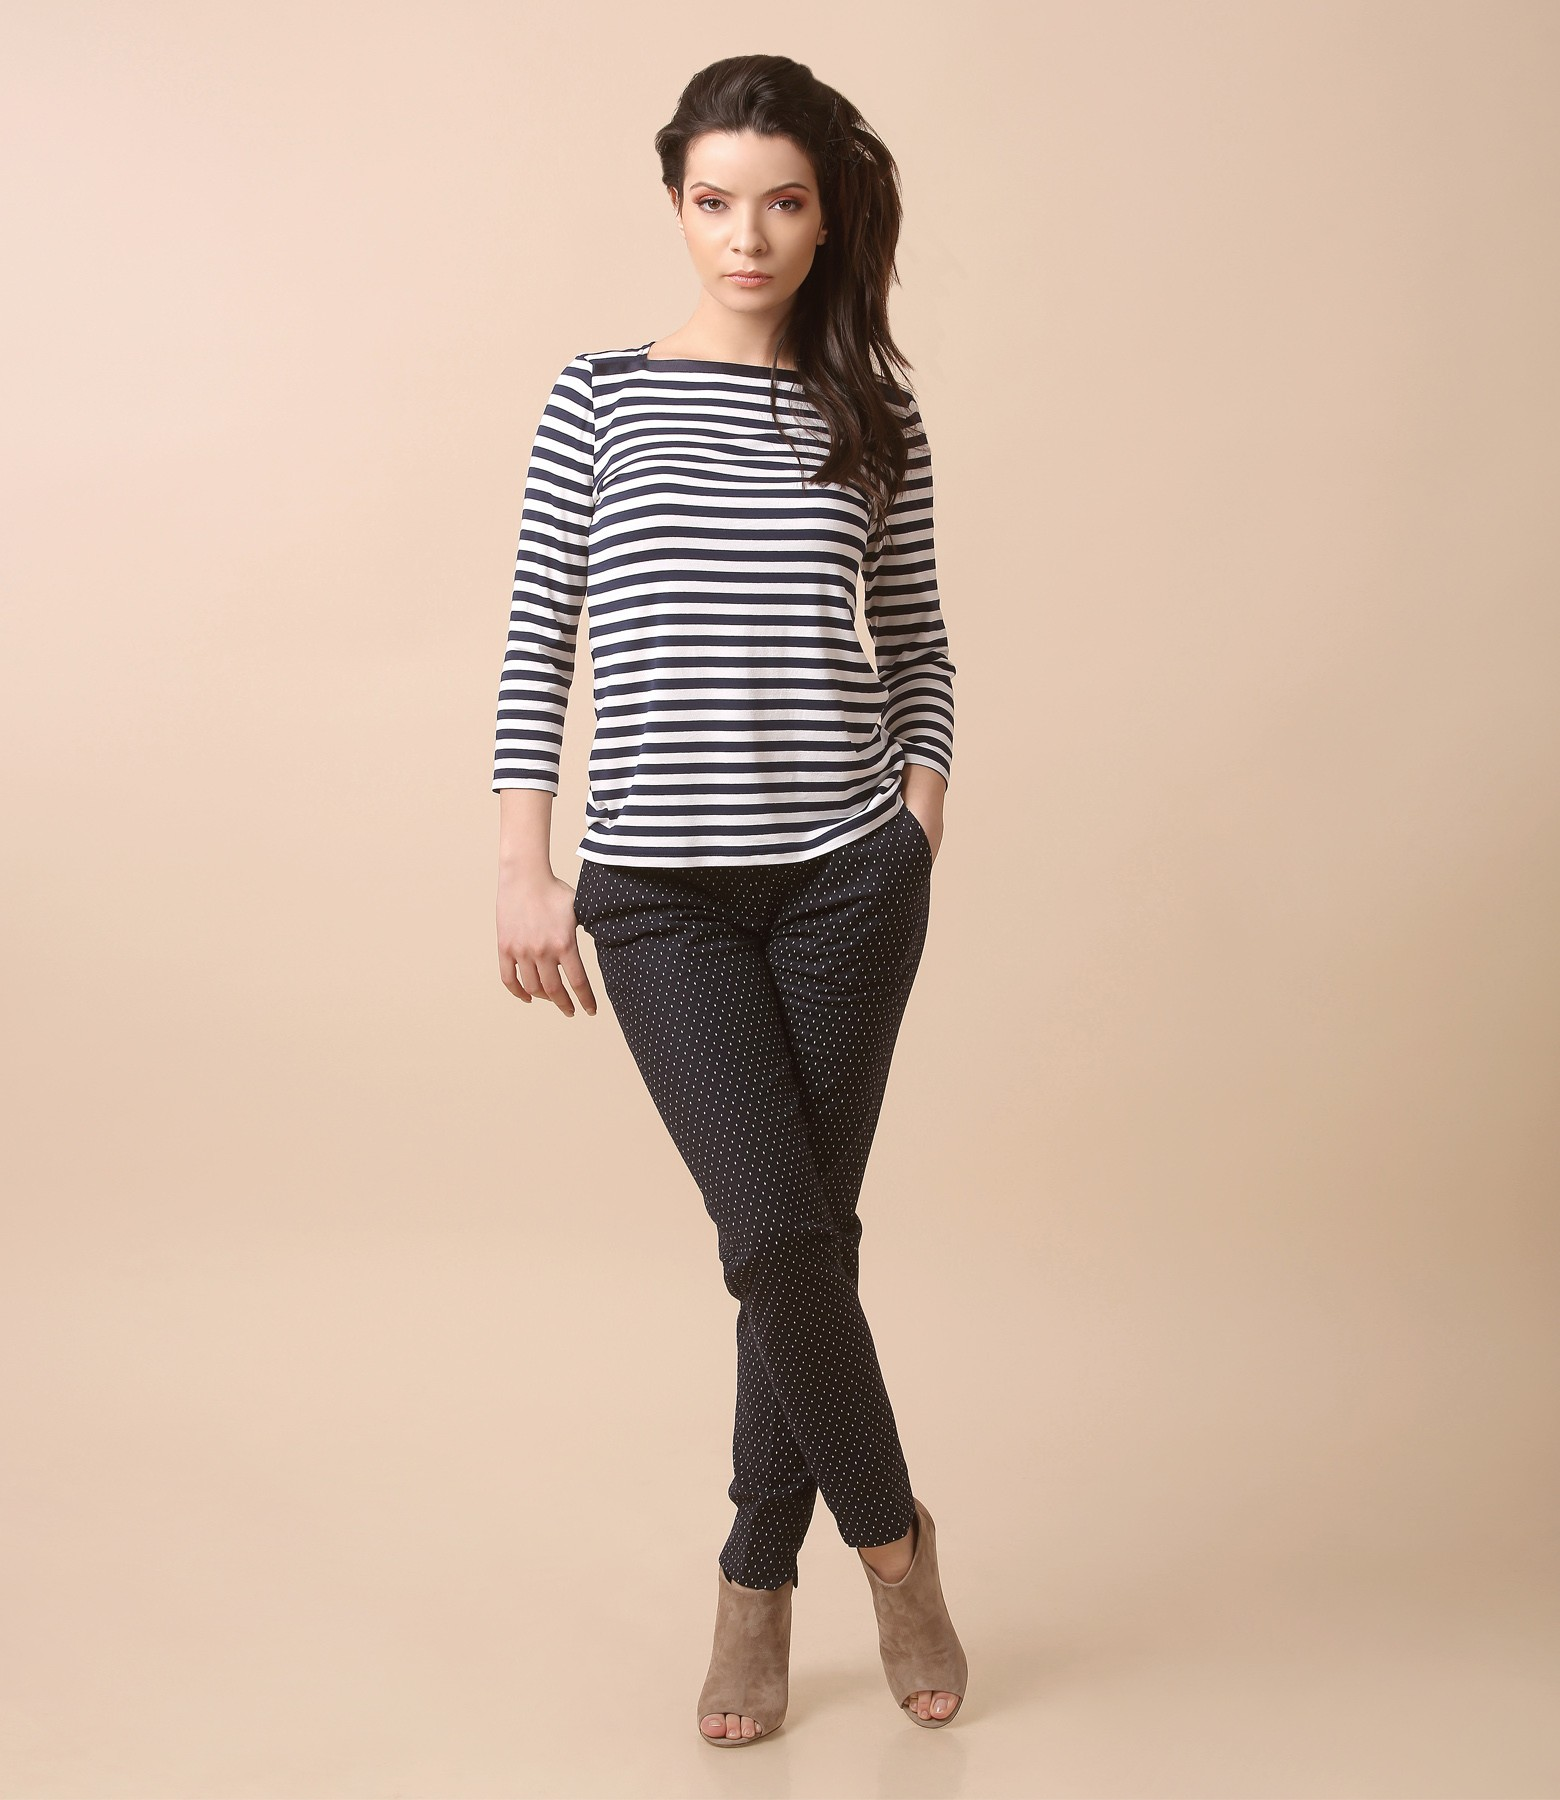 c6b27d198c Casual outfit with jersey blouse with stripes and pants with lace corner